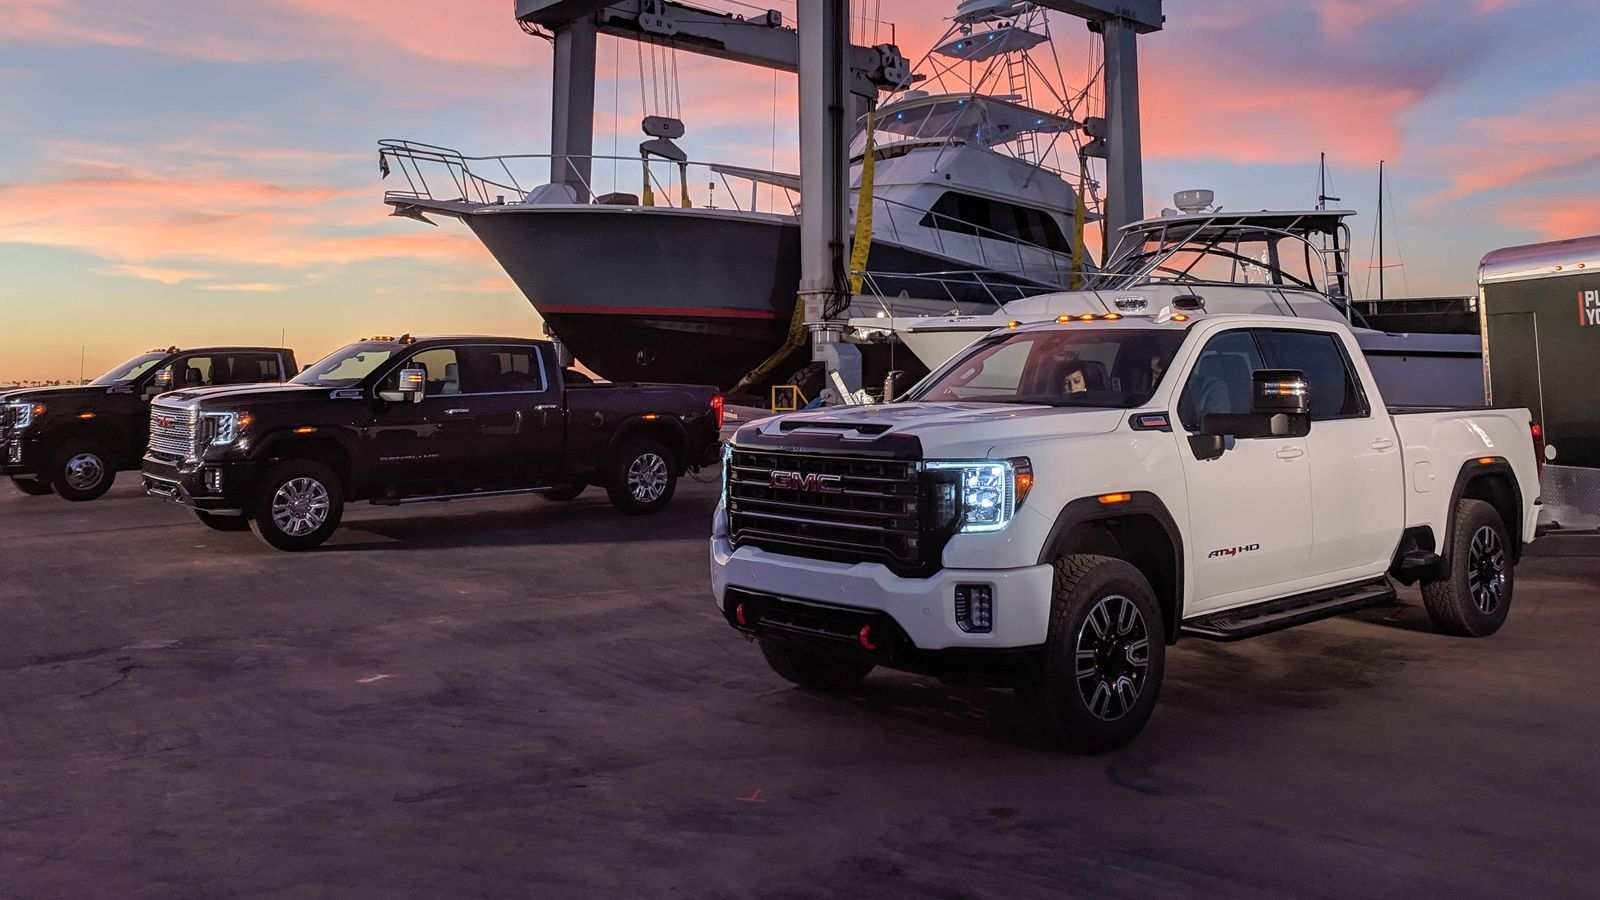 79 All New 2020 Gmc X Ray Research New with 2020 Gmc X Ray